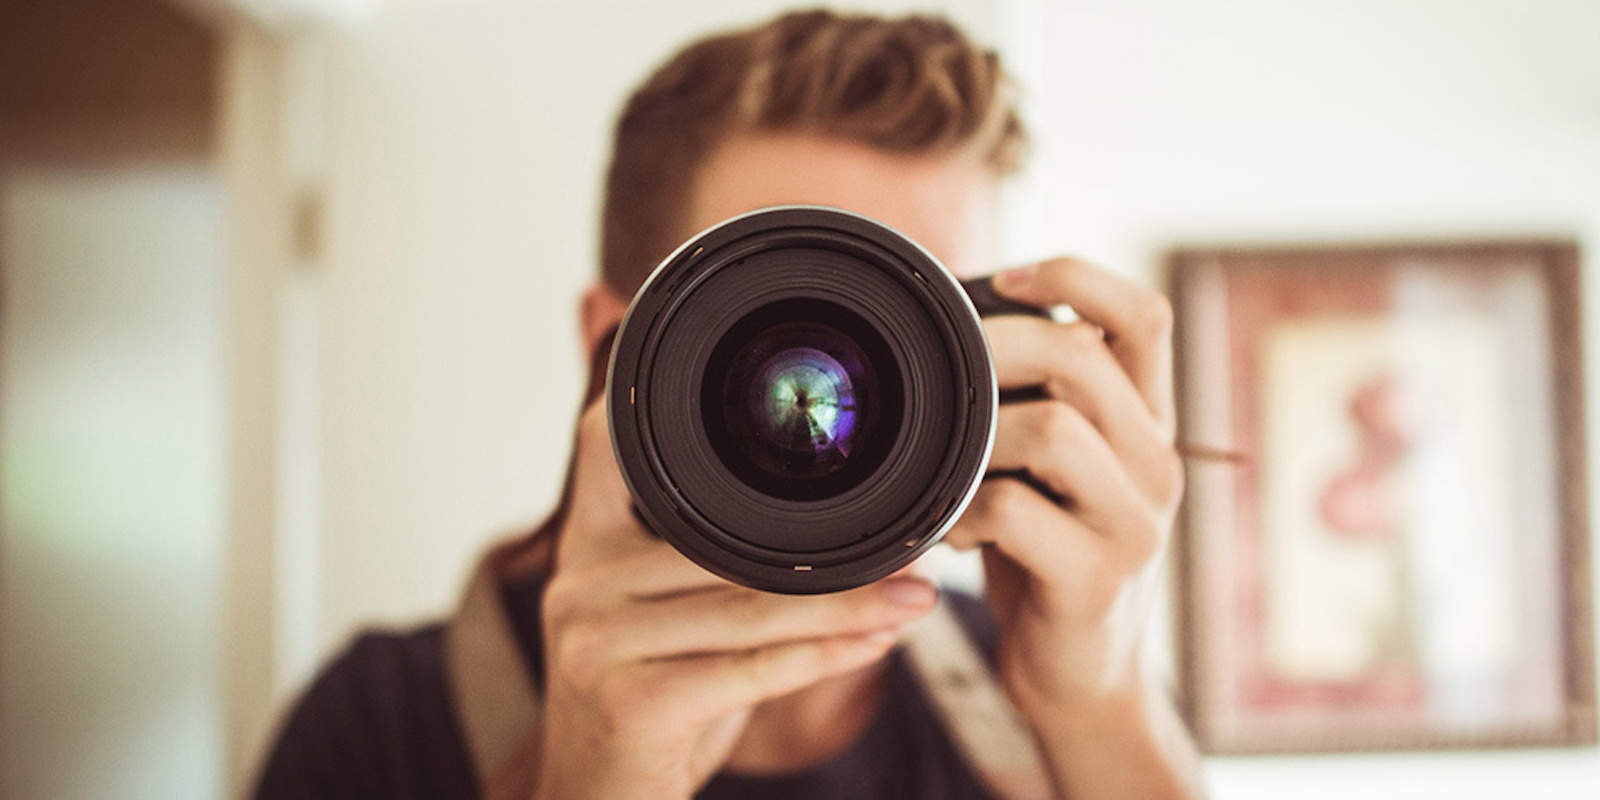 Digital SLR Photography course